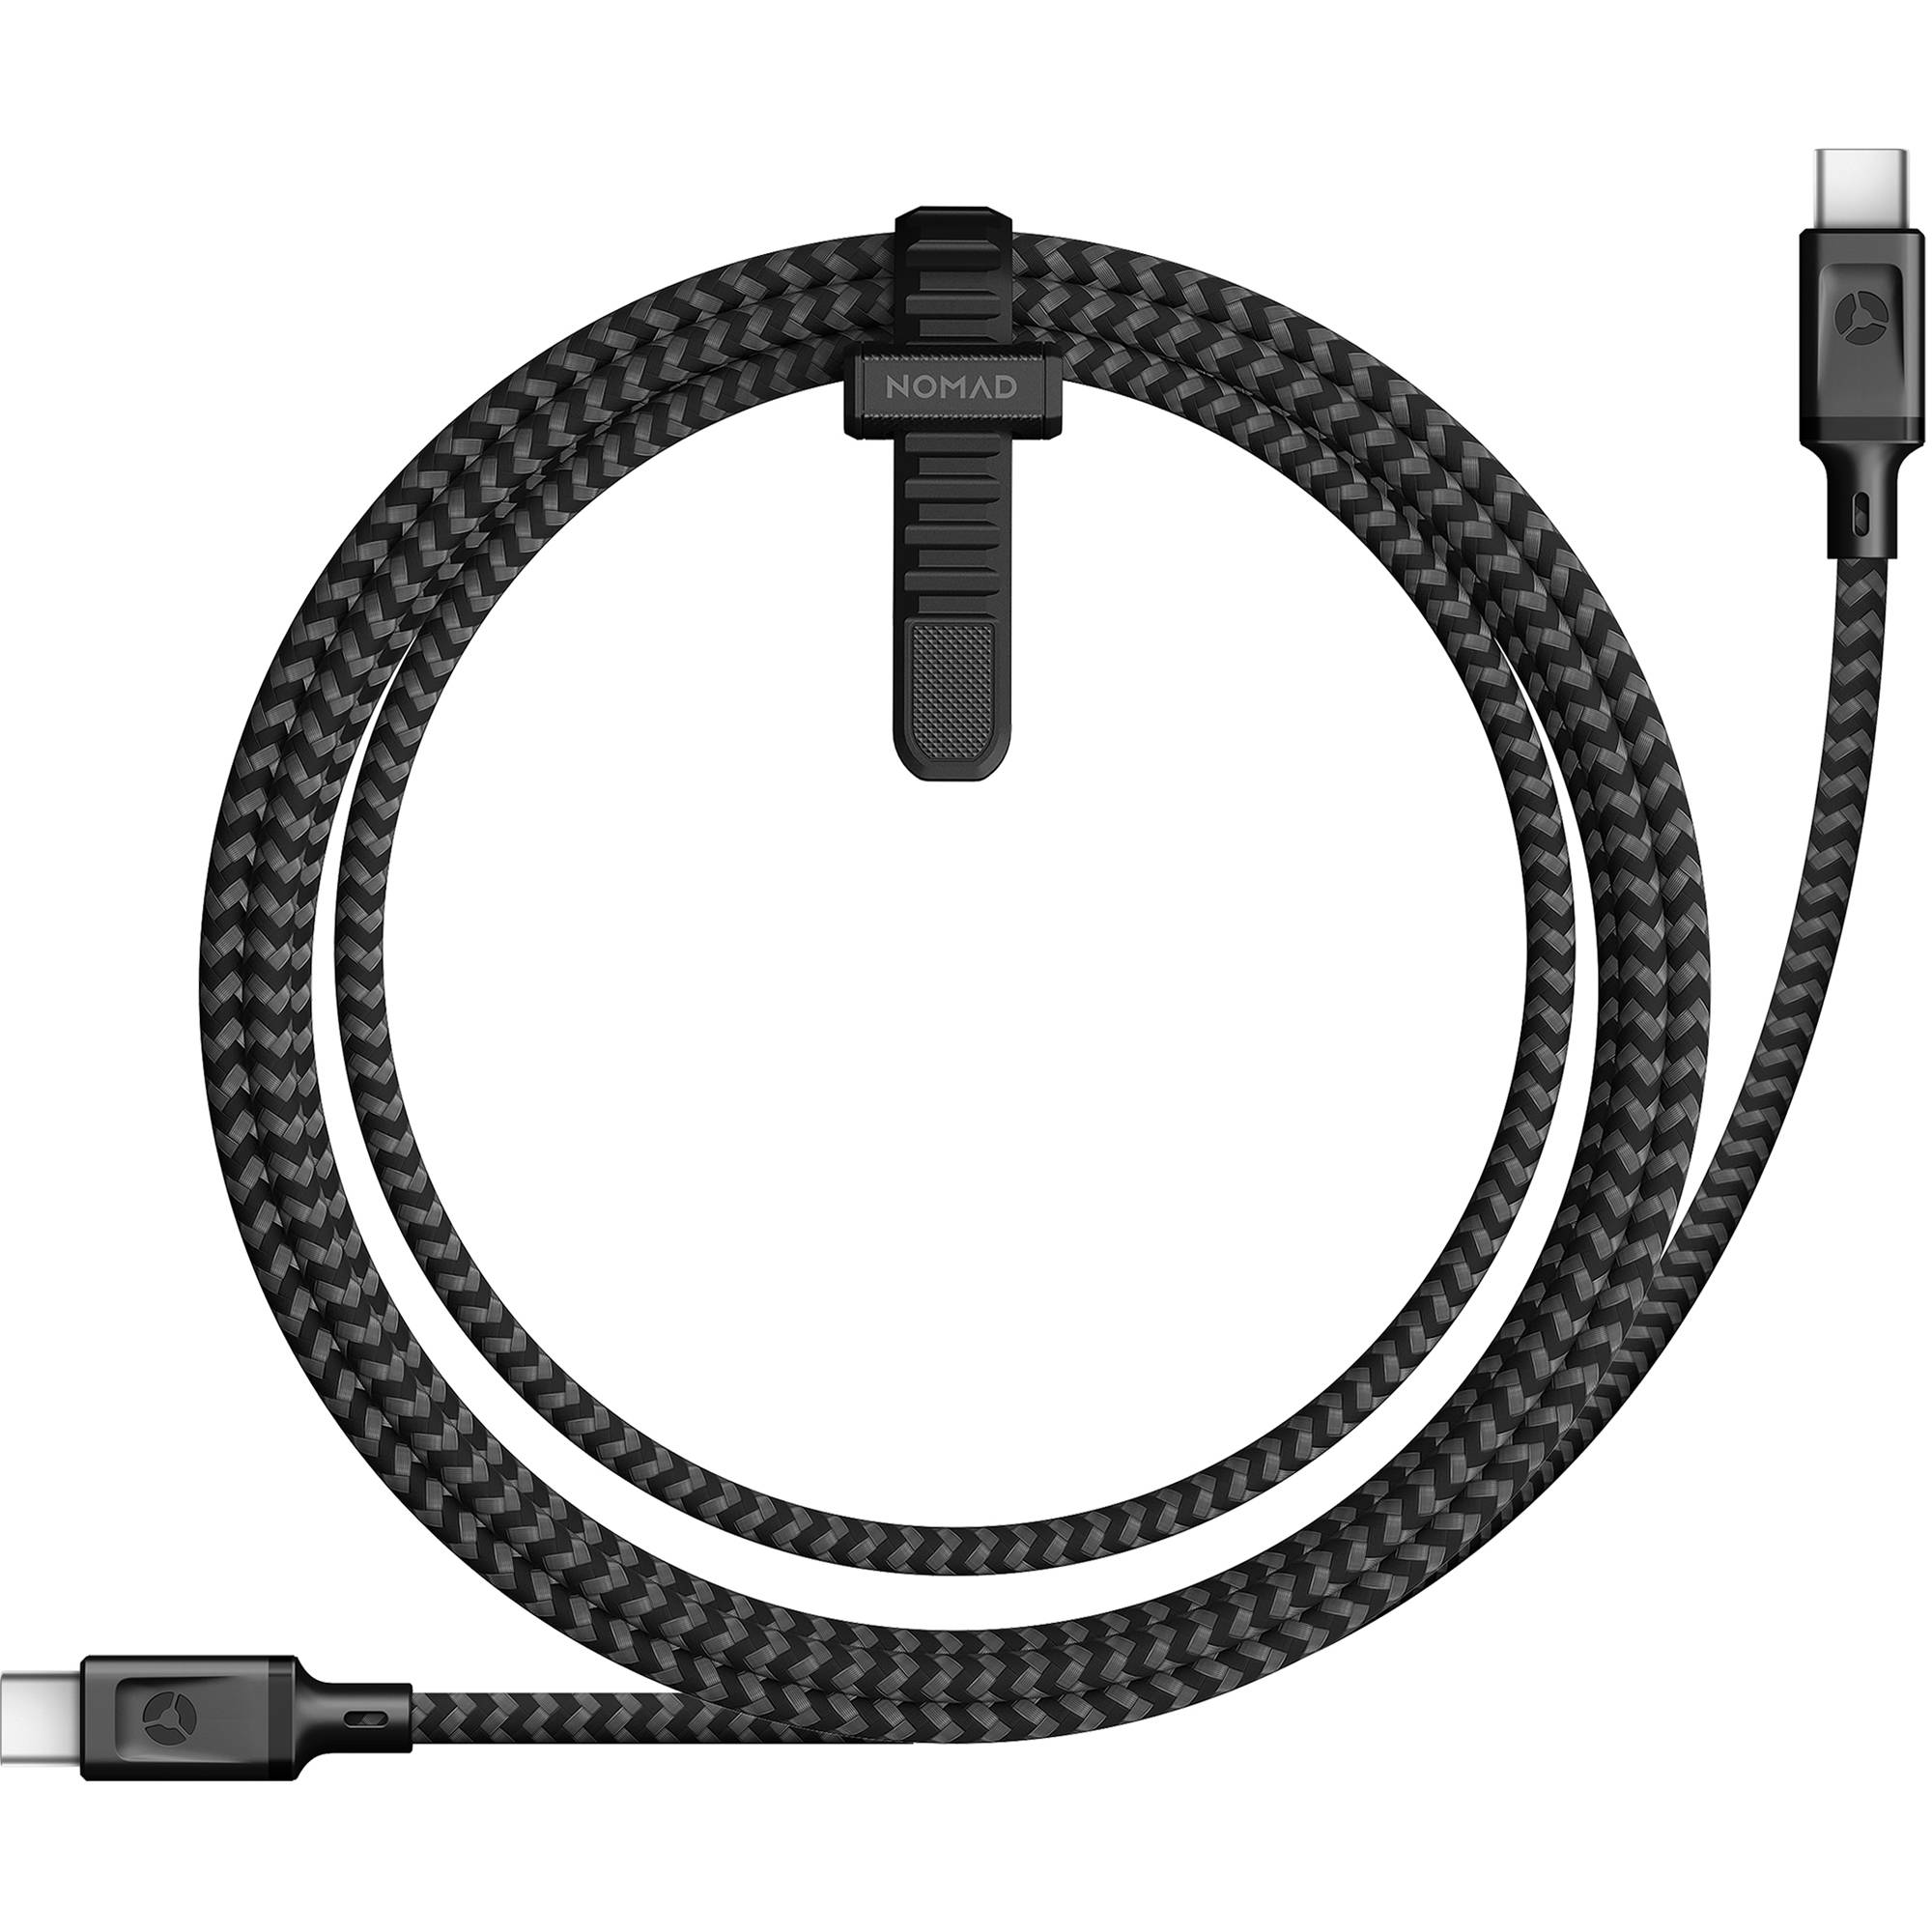 Nomad 60W USB Type-C Cable (5')